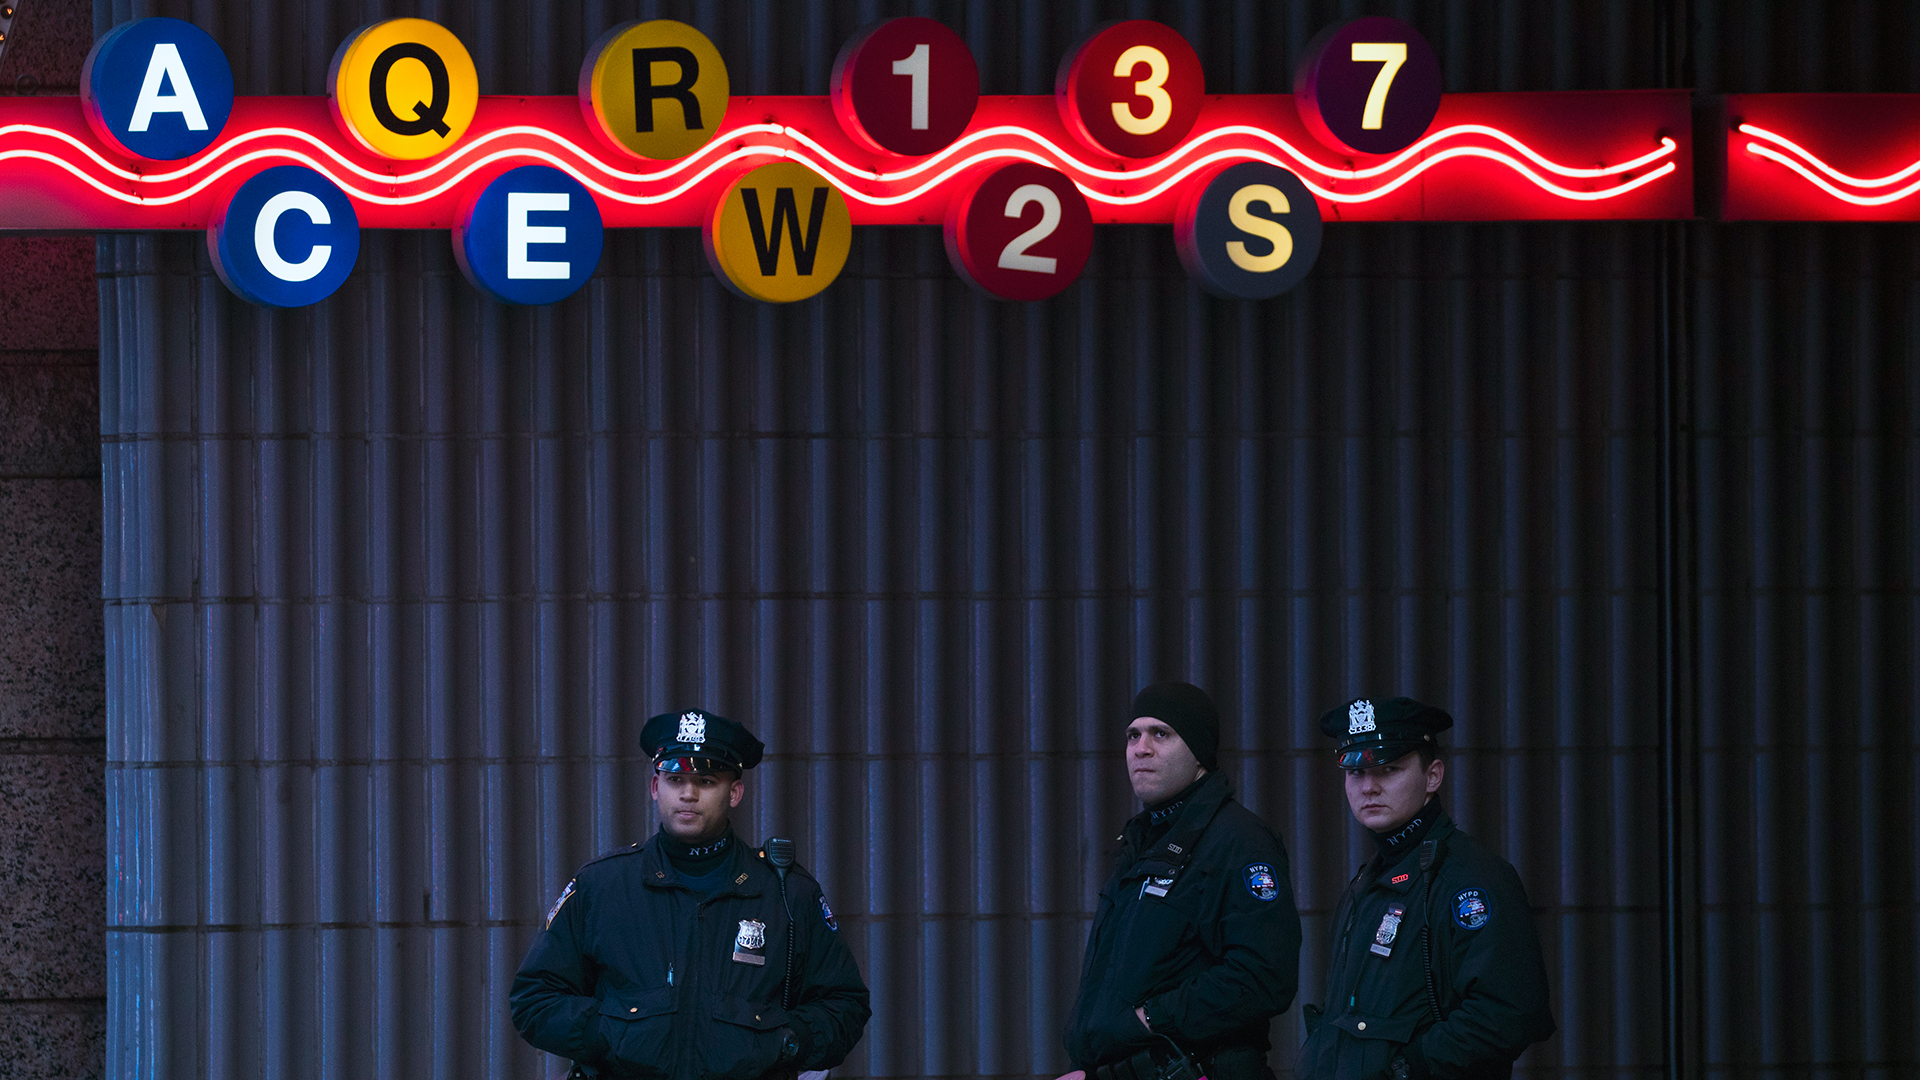 NYPD officers at closed subway station after explosion-159532.jpg86701559